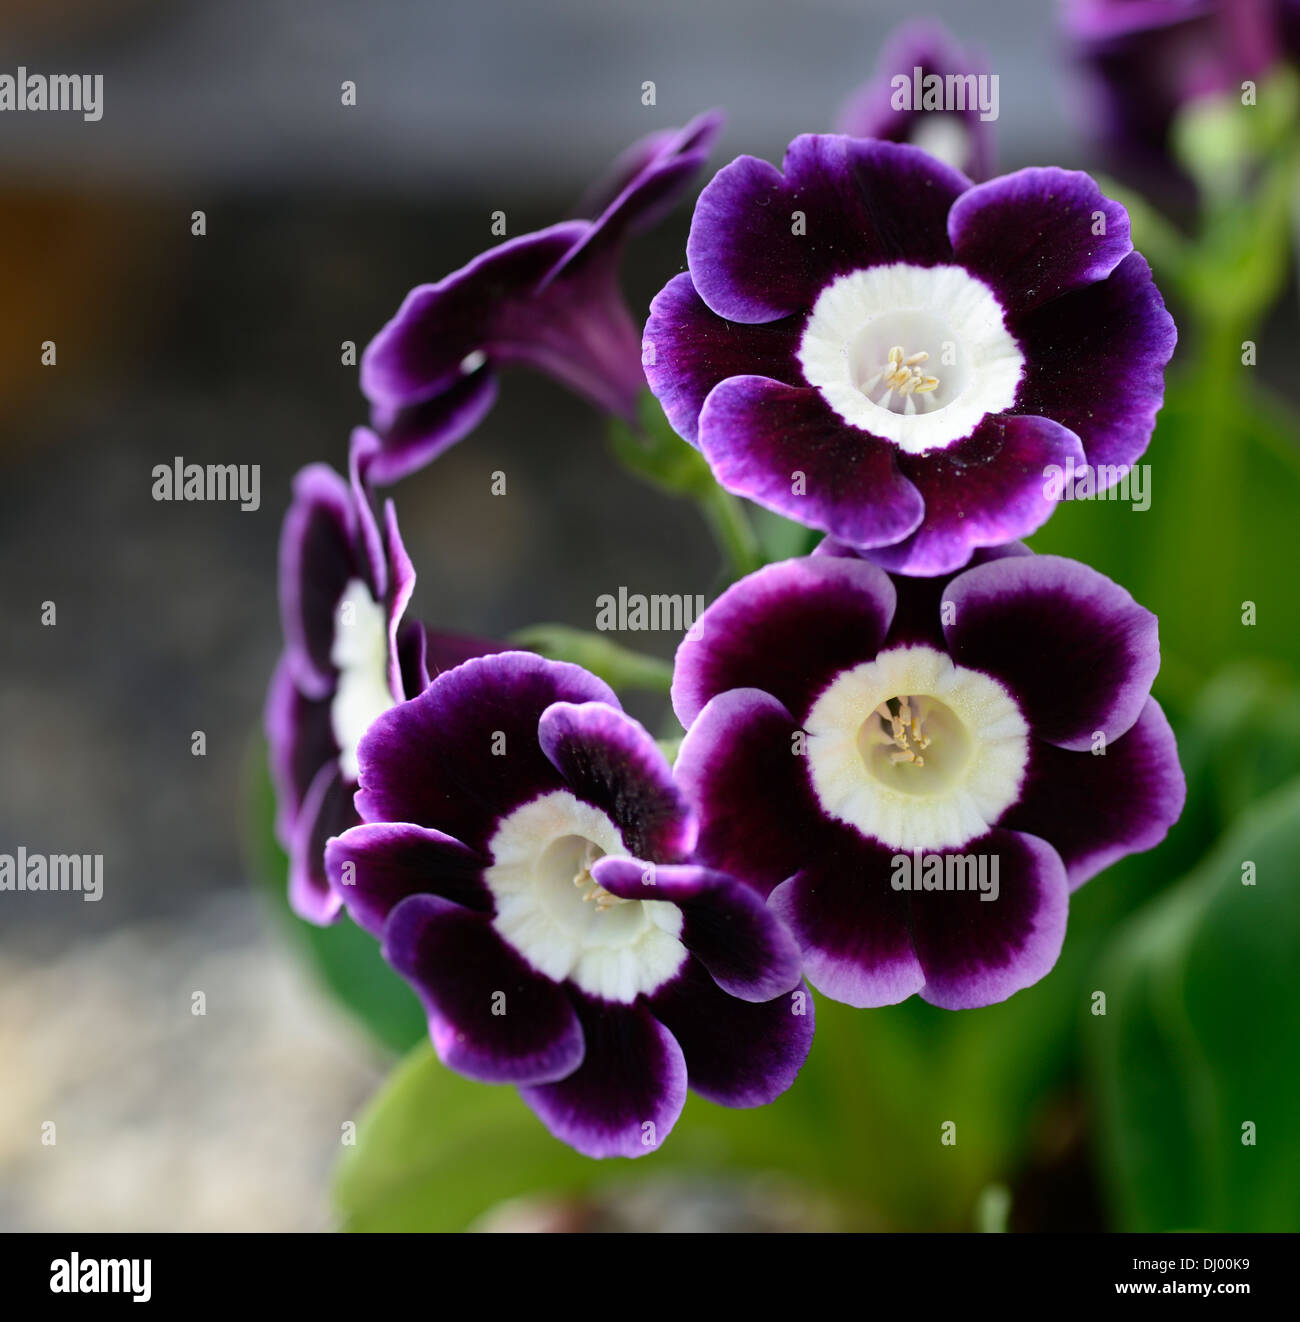 Primula auricula joyce blue purple flowers white eye primrose stock primula auricula joyce blue purple flowers white eye primrose mightylinksfo